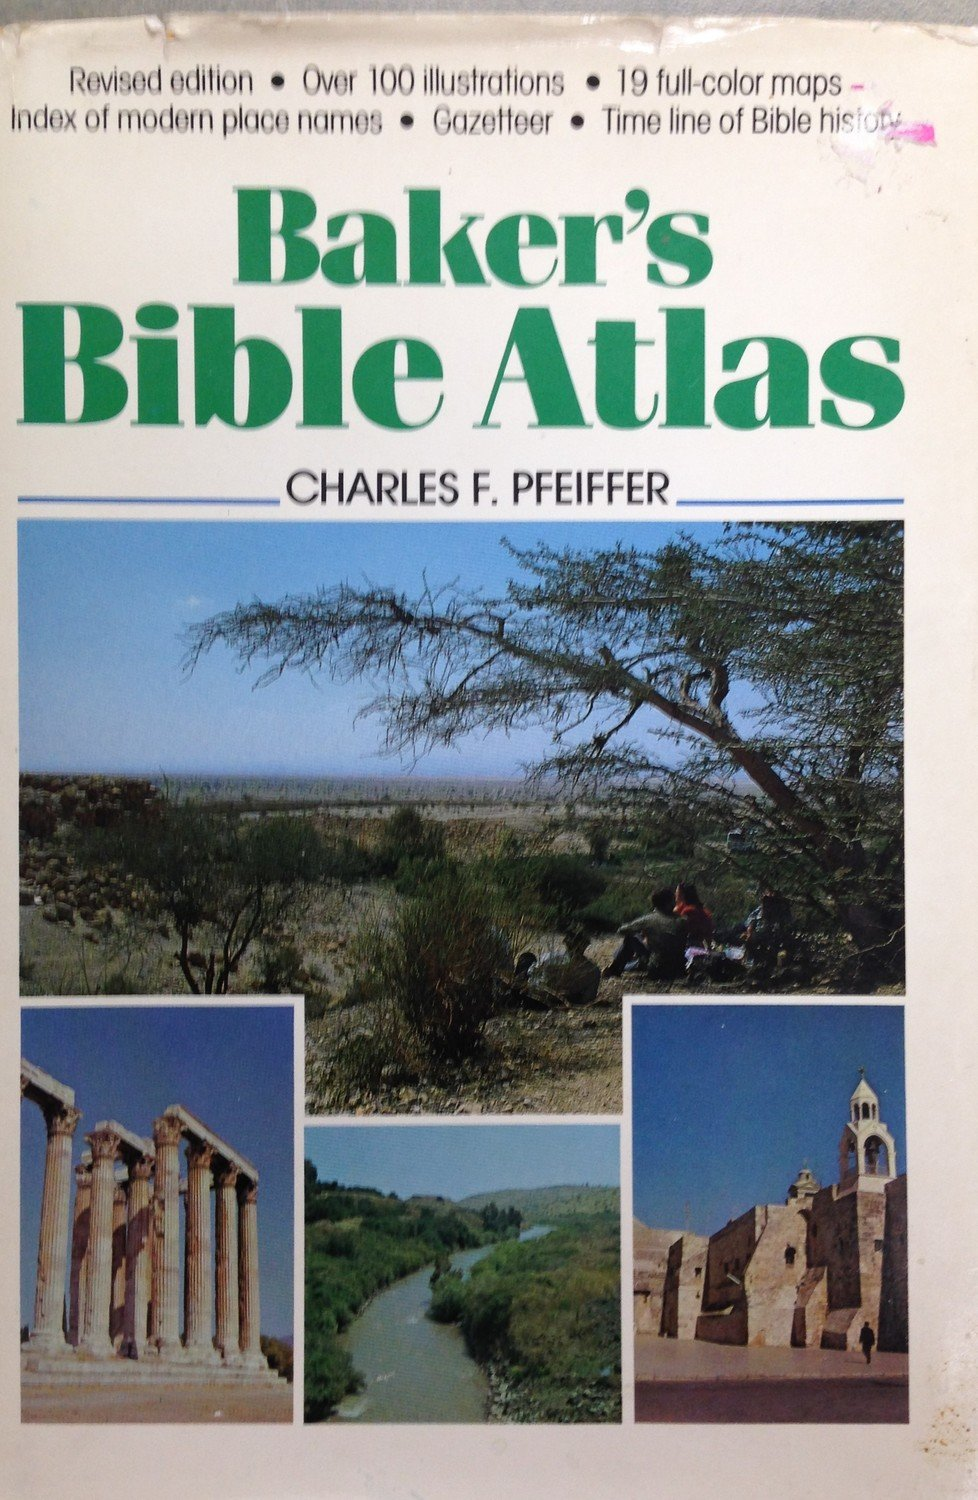 Baker's Bible Atlas by Charles F. Pfeiffer  (USED)